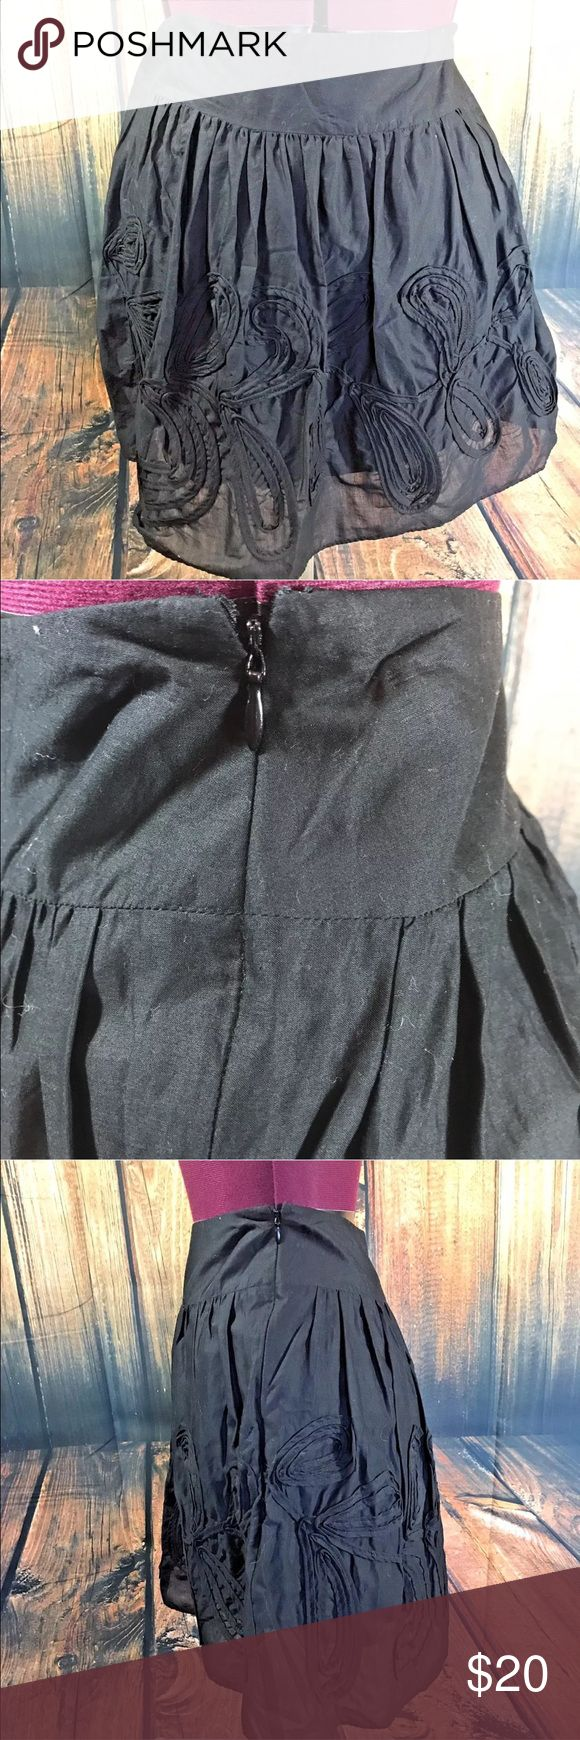 "Ann Taylor Loft Petite Skirt Fabulous skirt by Ann Taylor LOFT Petites  Side zip  Lined  100% Cotton  Size 00P  Measures 13"" across waistband, flat  Measures 18.5"" long  Gently worn, good condition LOFT Skirts A-Line or Full"